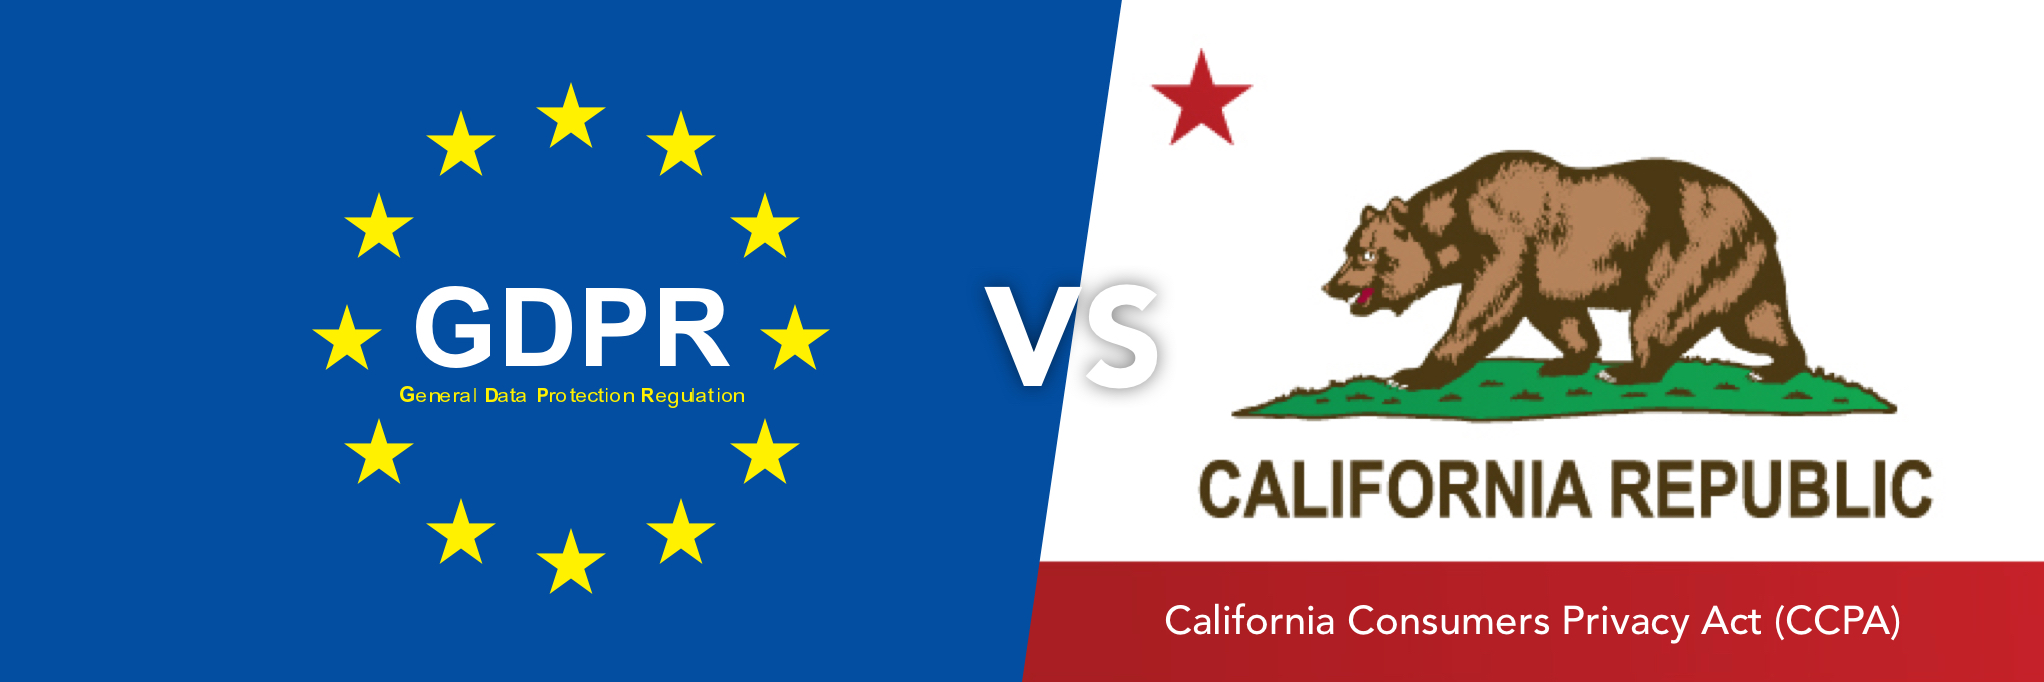 GDPR vs. the California Consumers Privacy Act (CCPA)